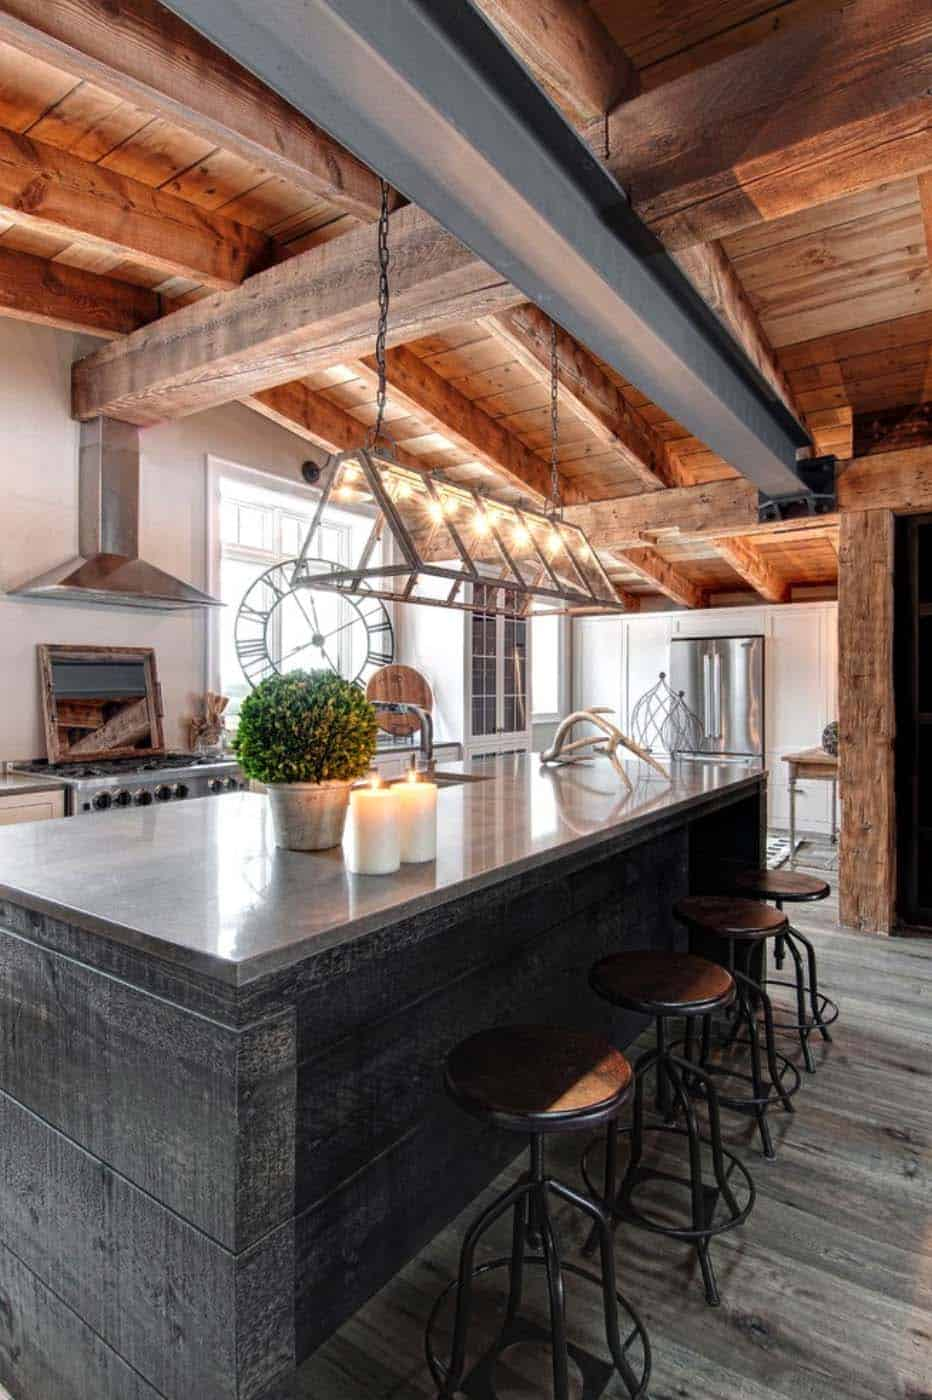 Luxury canadian home reveals splendid rustic modern aesthetic for Luxury home plans with cost to build